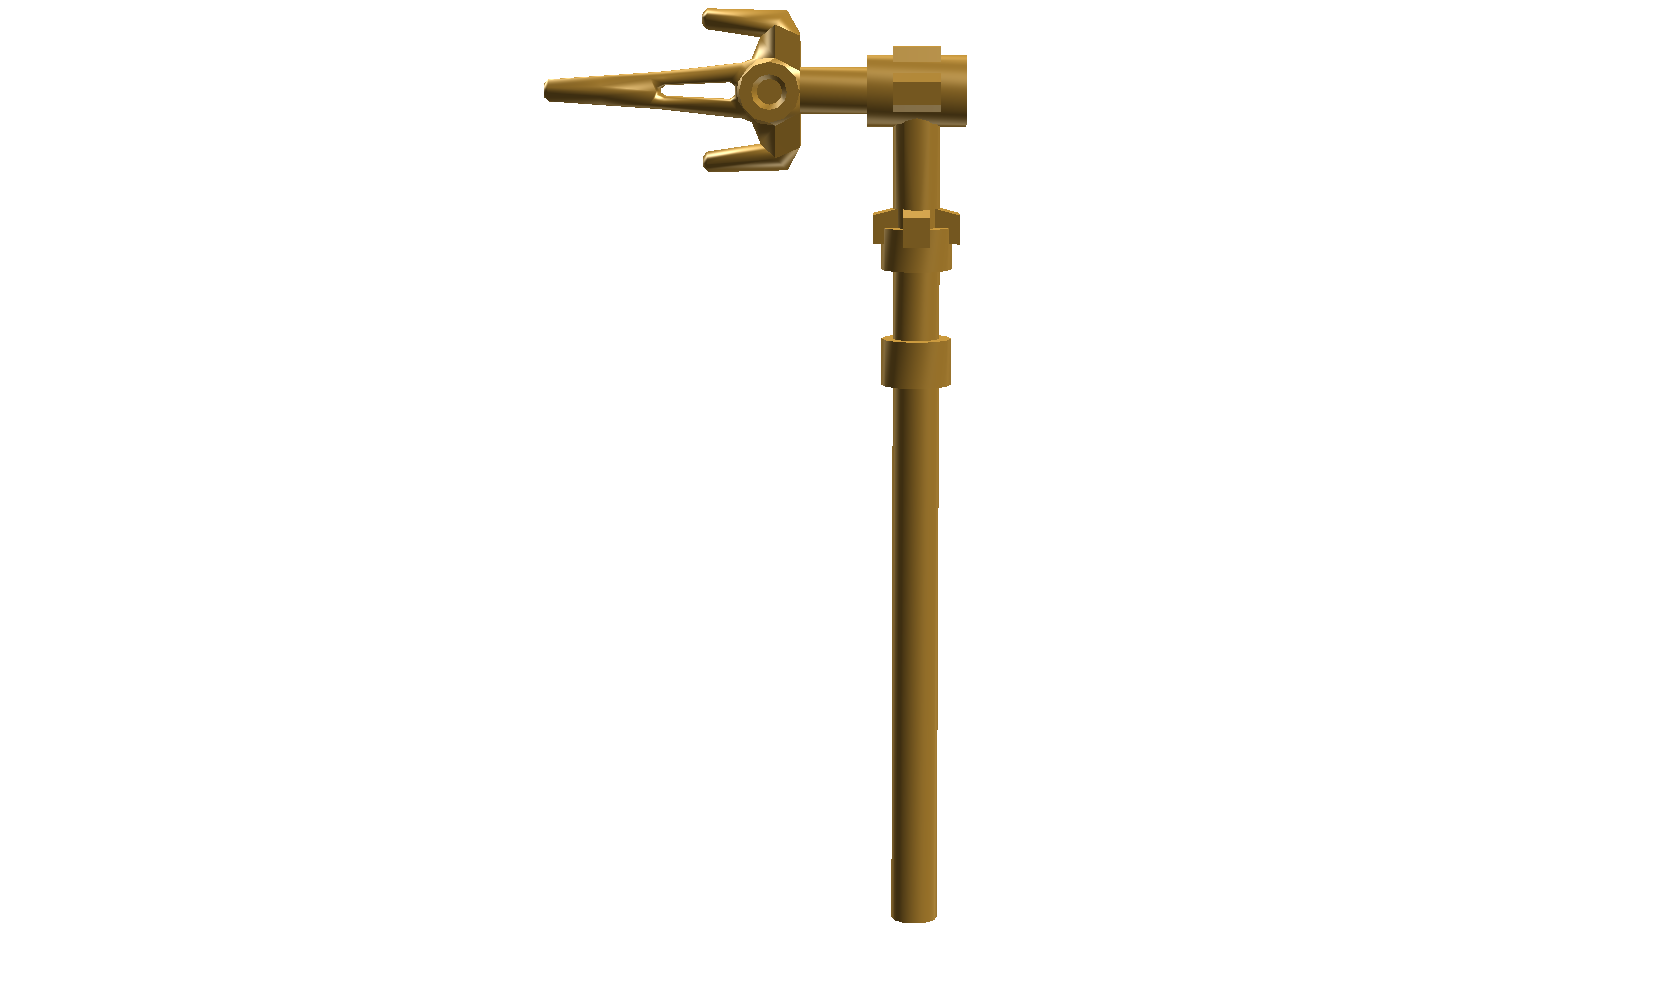 The Four Golden Weapons Brickipedia The Lego Wiki